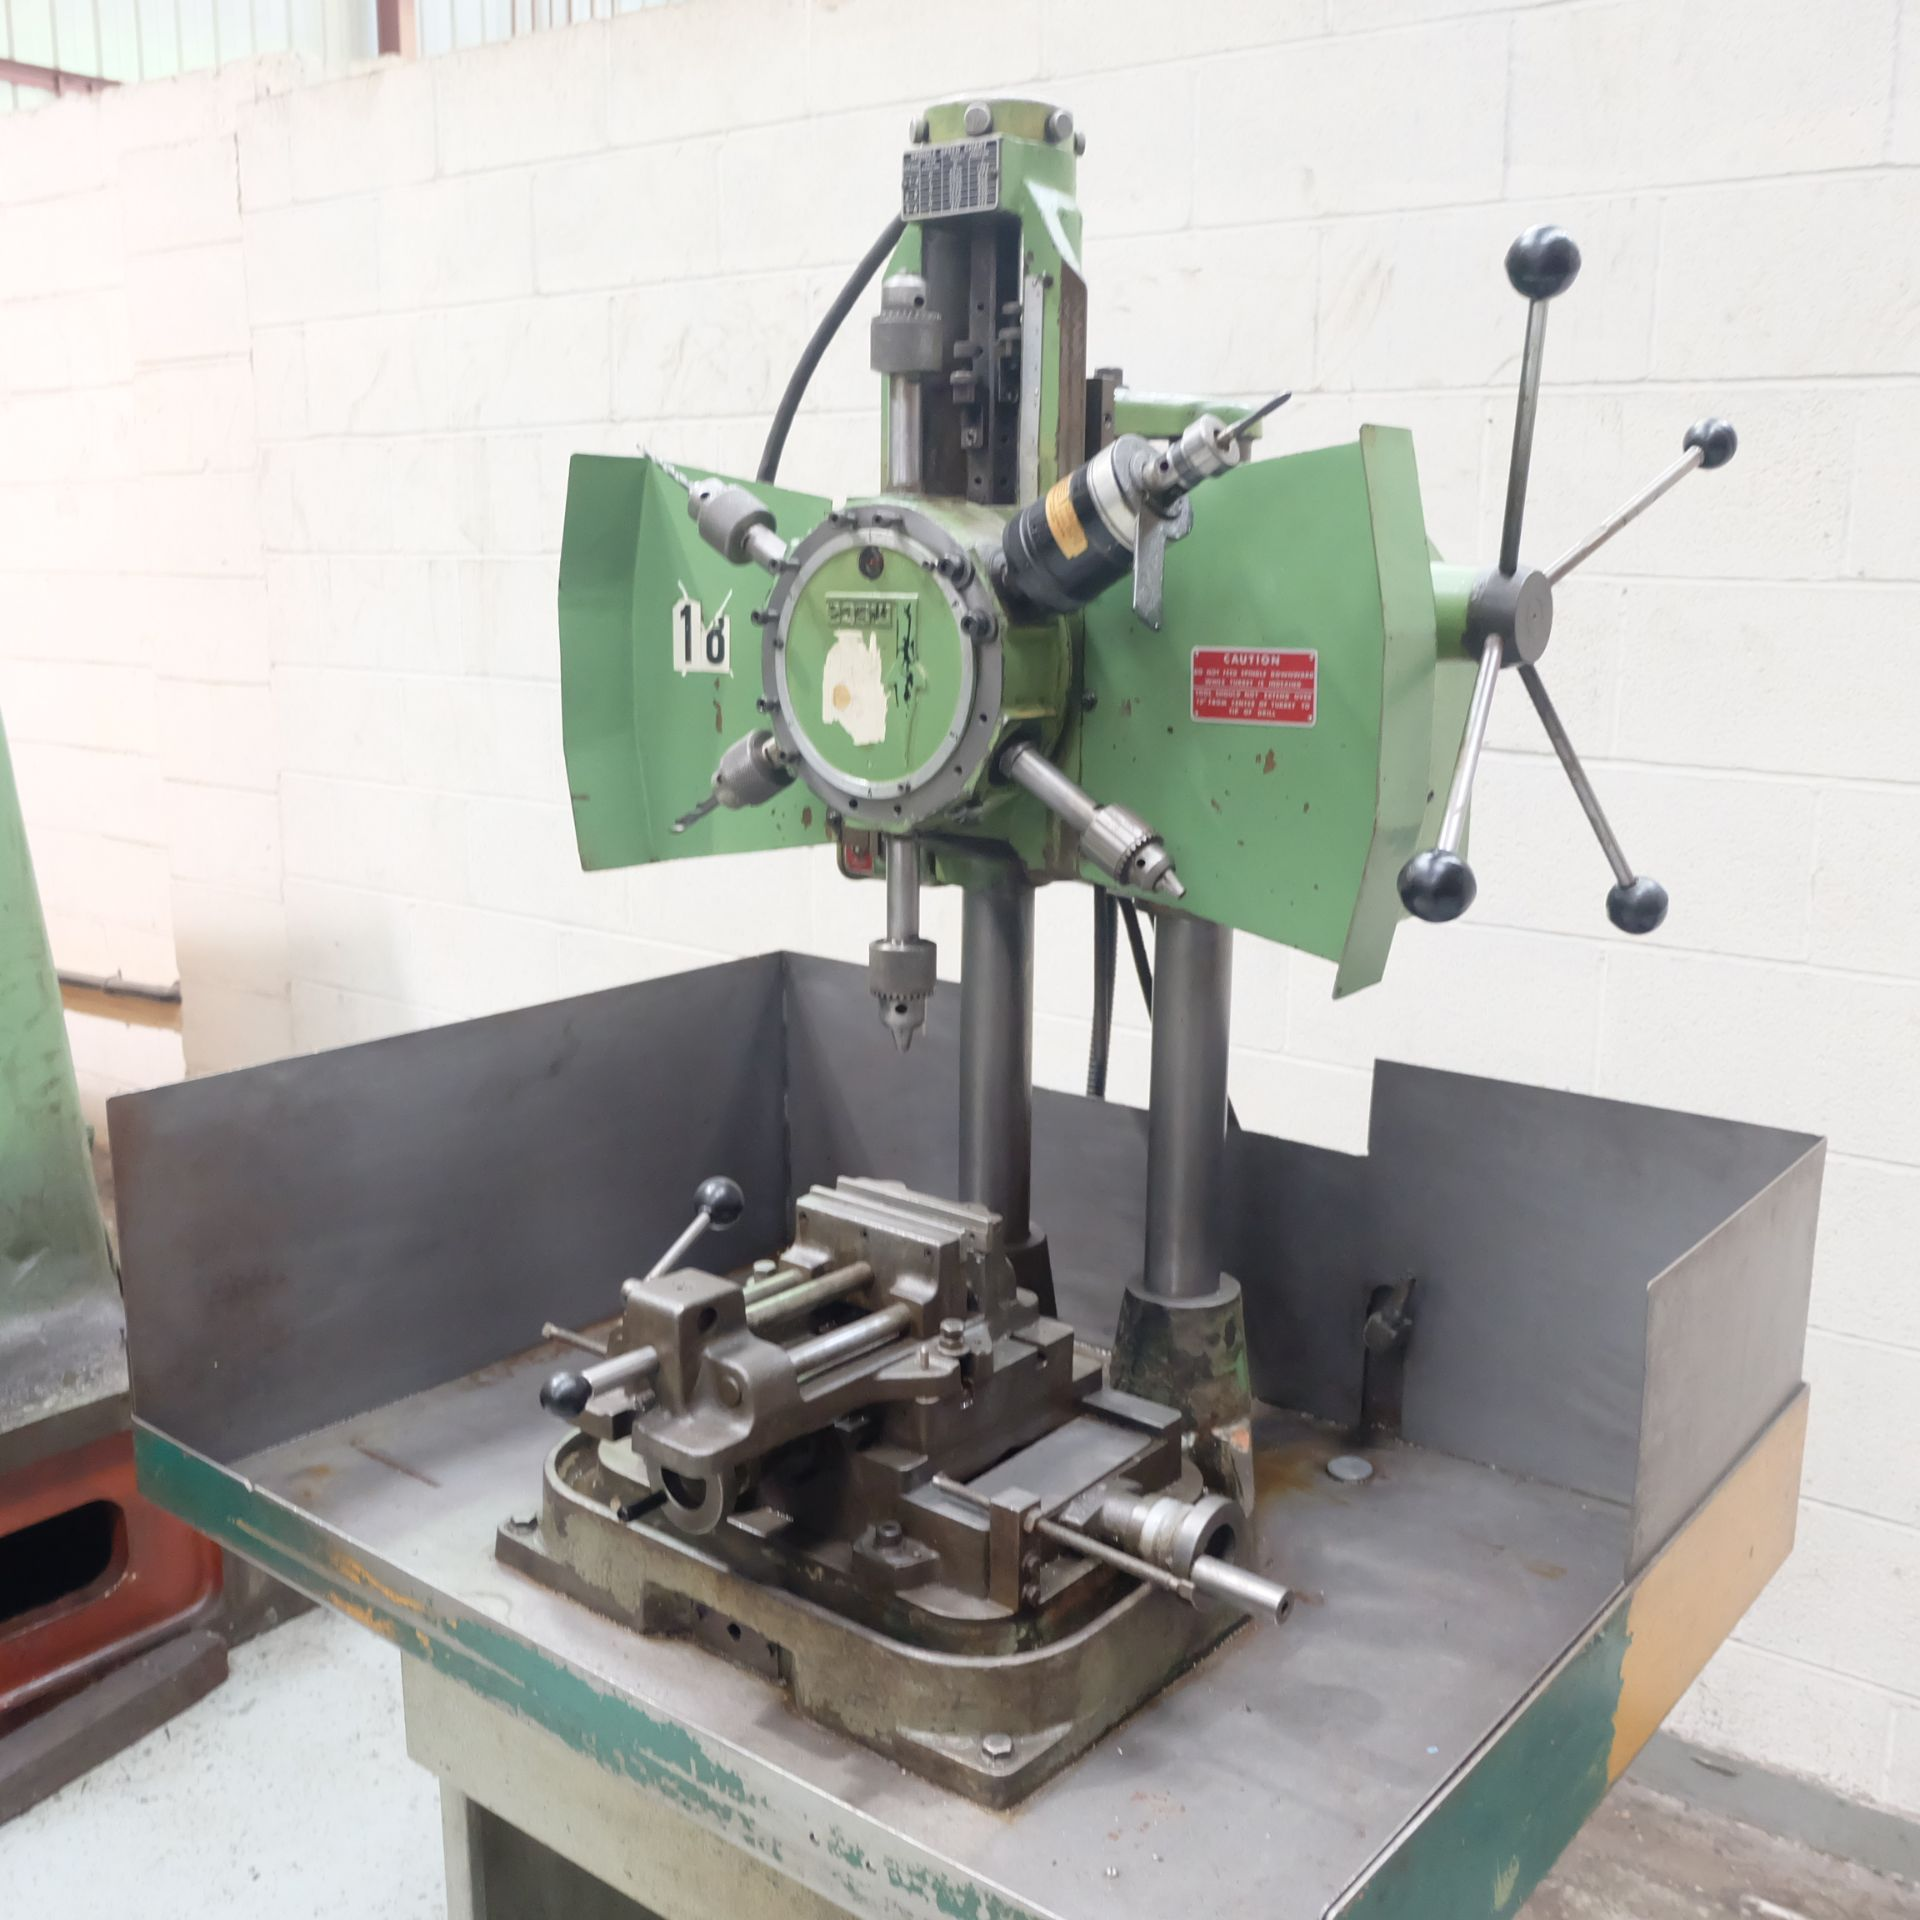 Lot 9 - A Meca 6 Spindle Turret Drill, Table 20in x 16in w